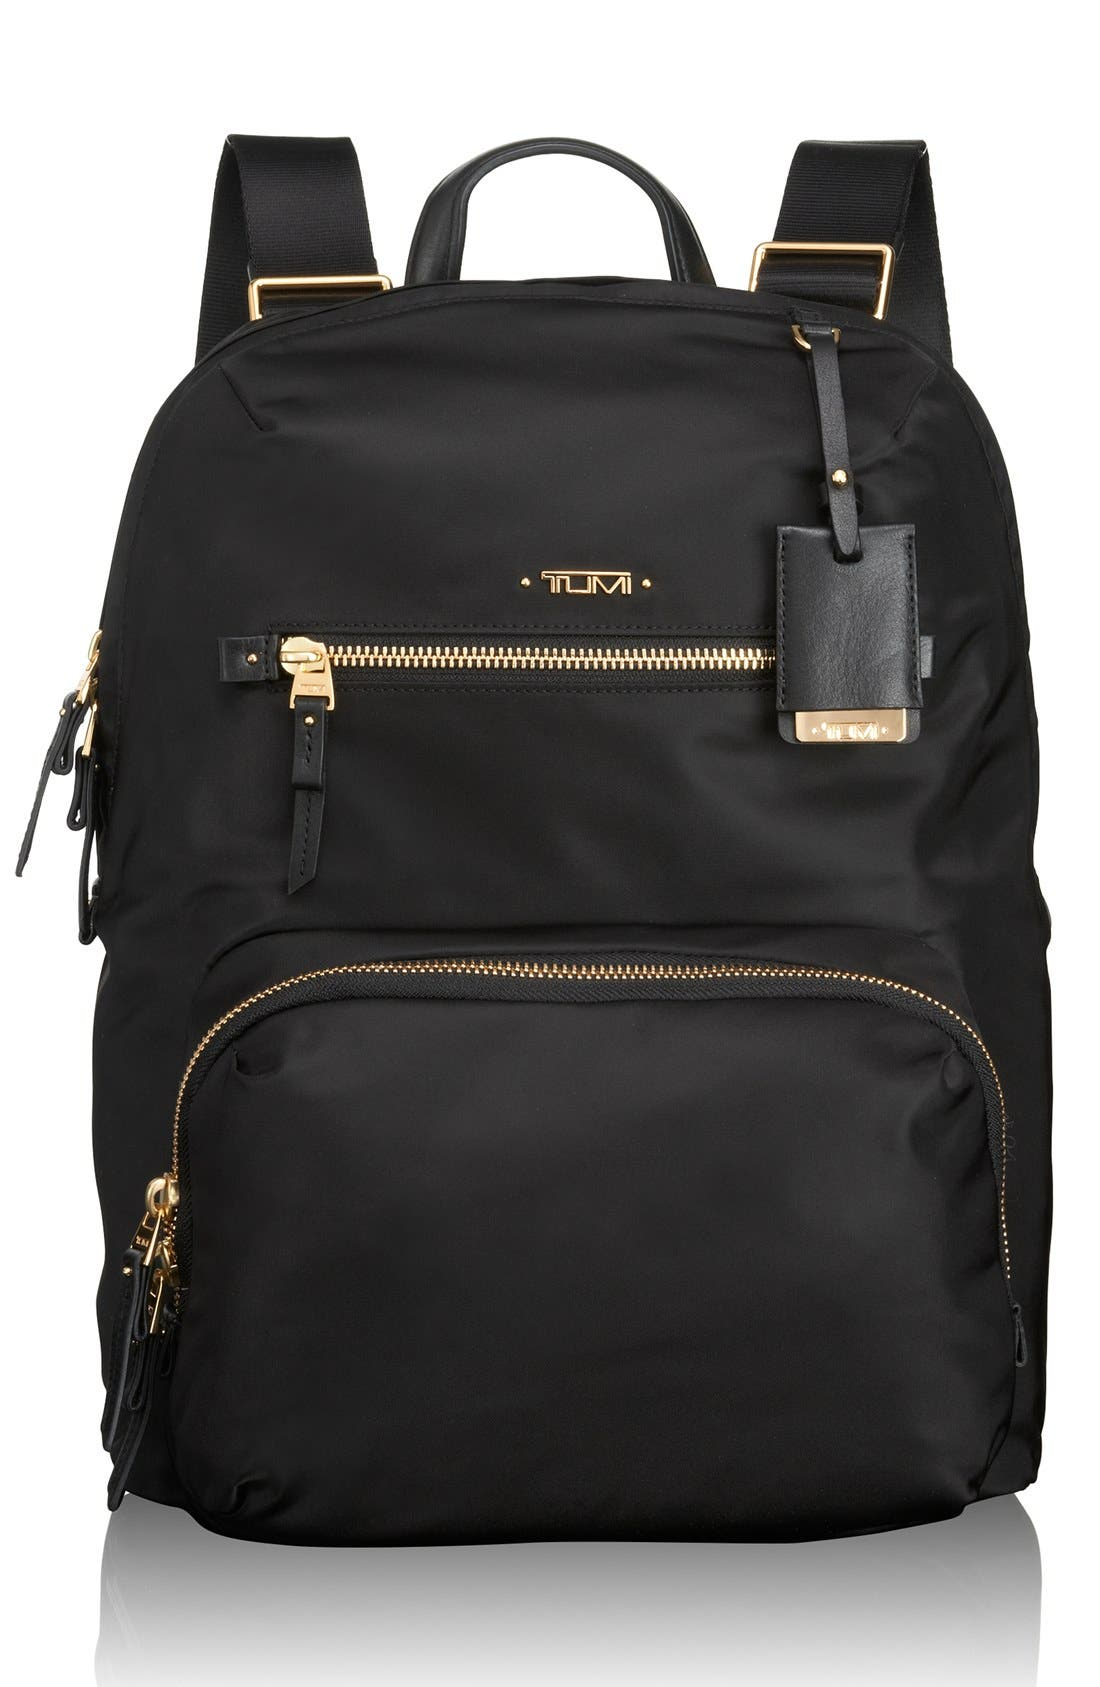 Tumi 'Voyageur Halle' Nylon Backpack